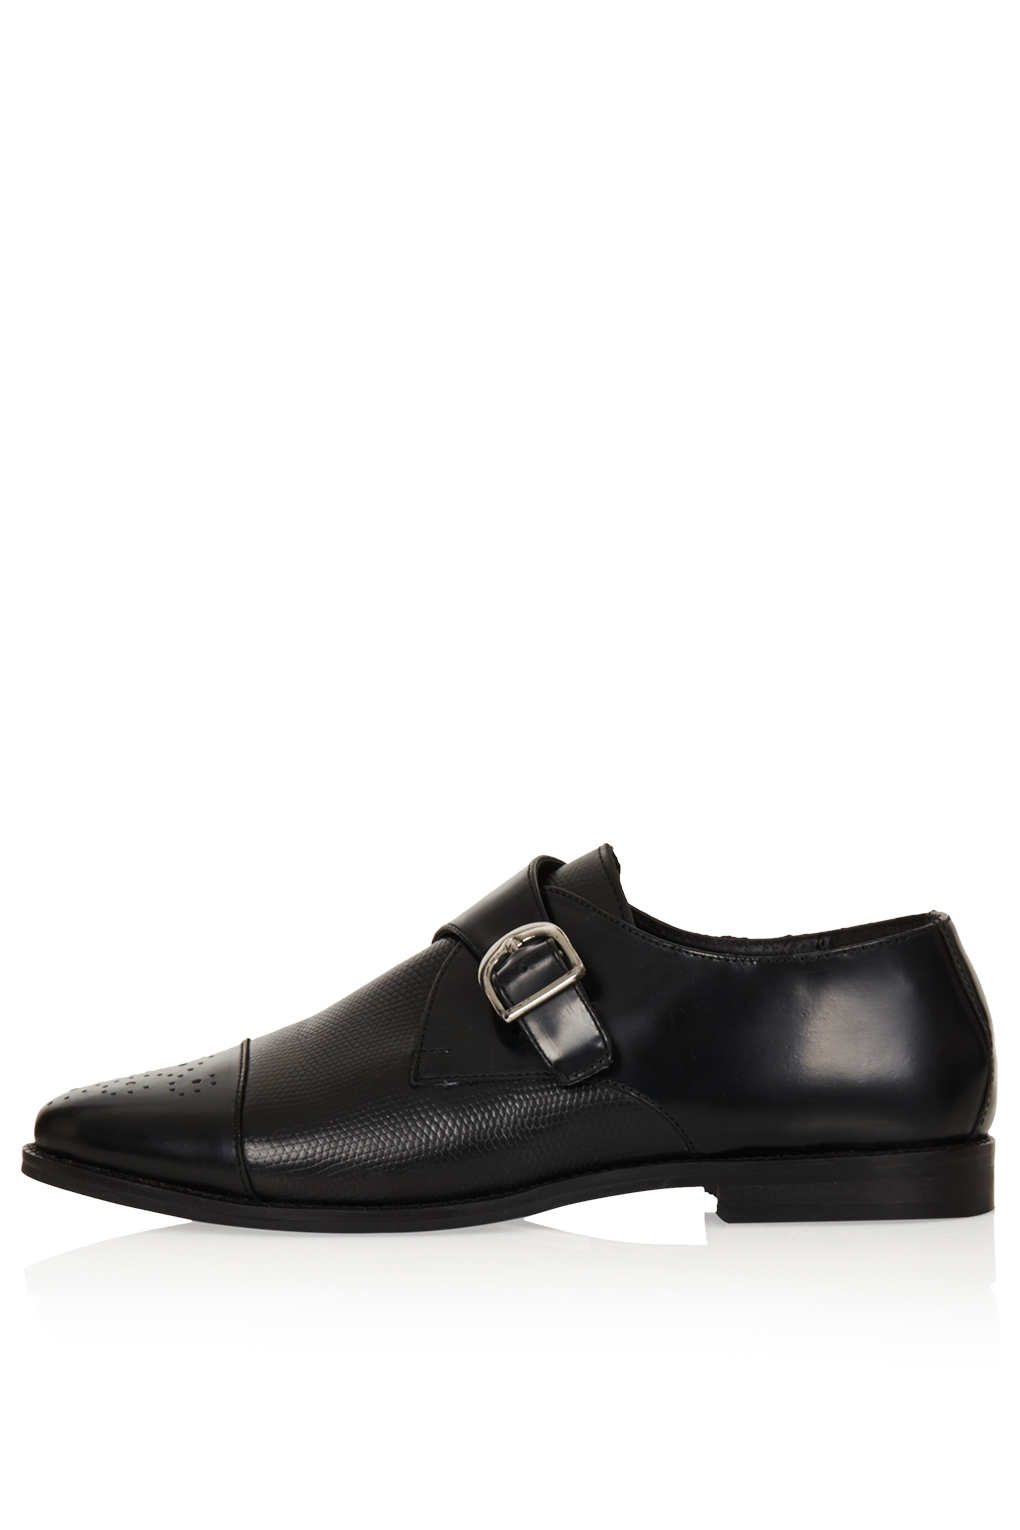 topshop kava brogue monk shoes in black lyst